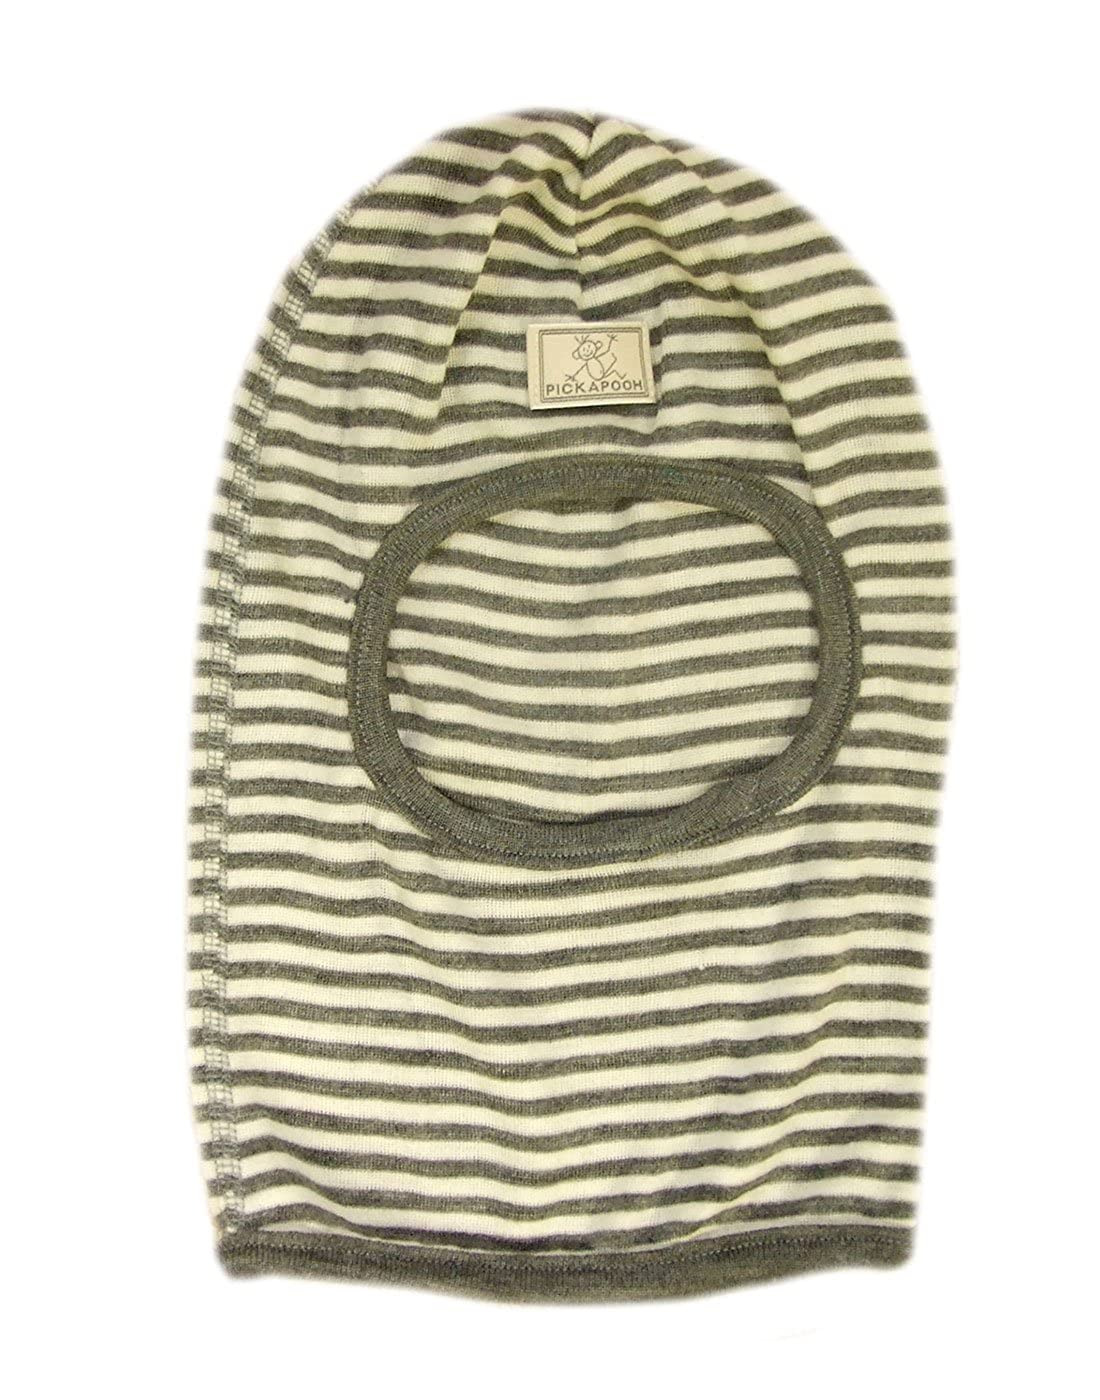 PICKAPOOH Hat MERINO wool SILK Balaclava Baby Boy Girl Children Winter Organic Bosse